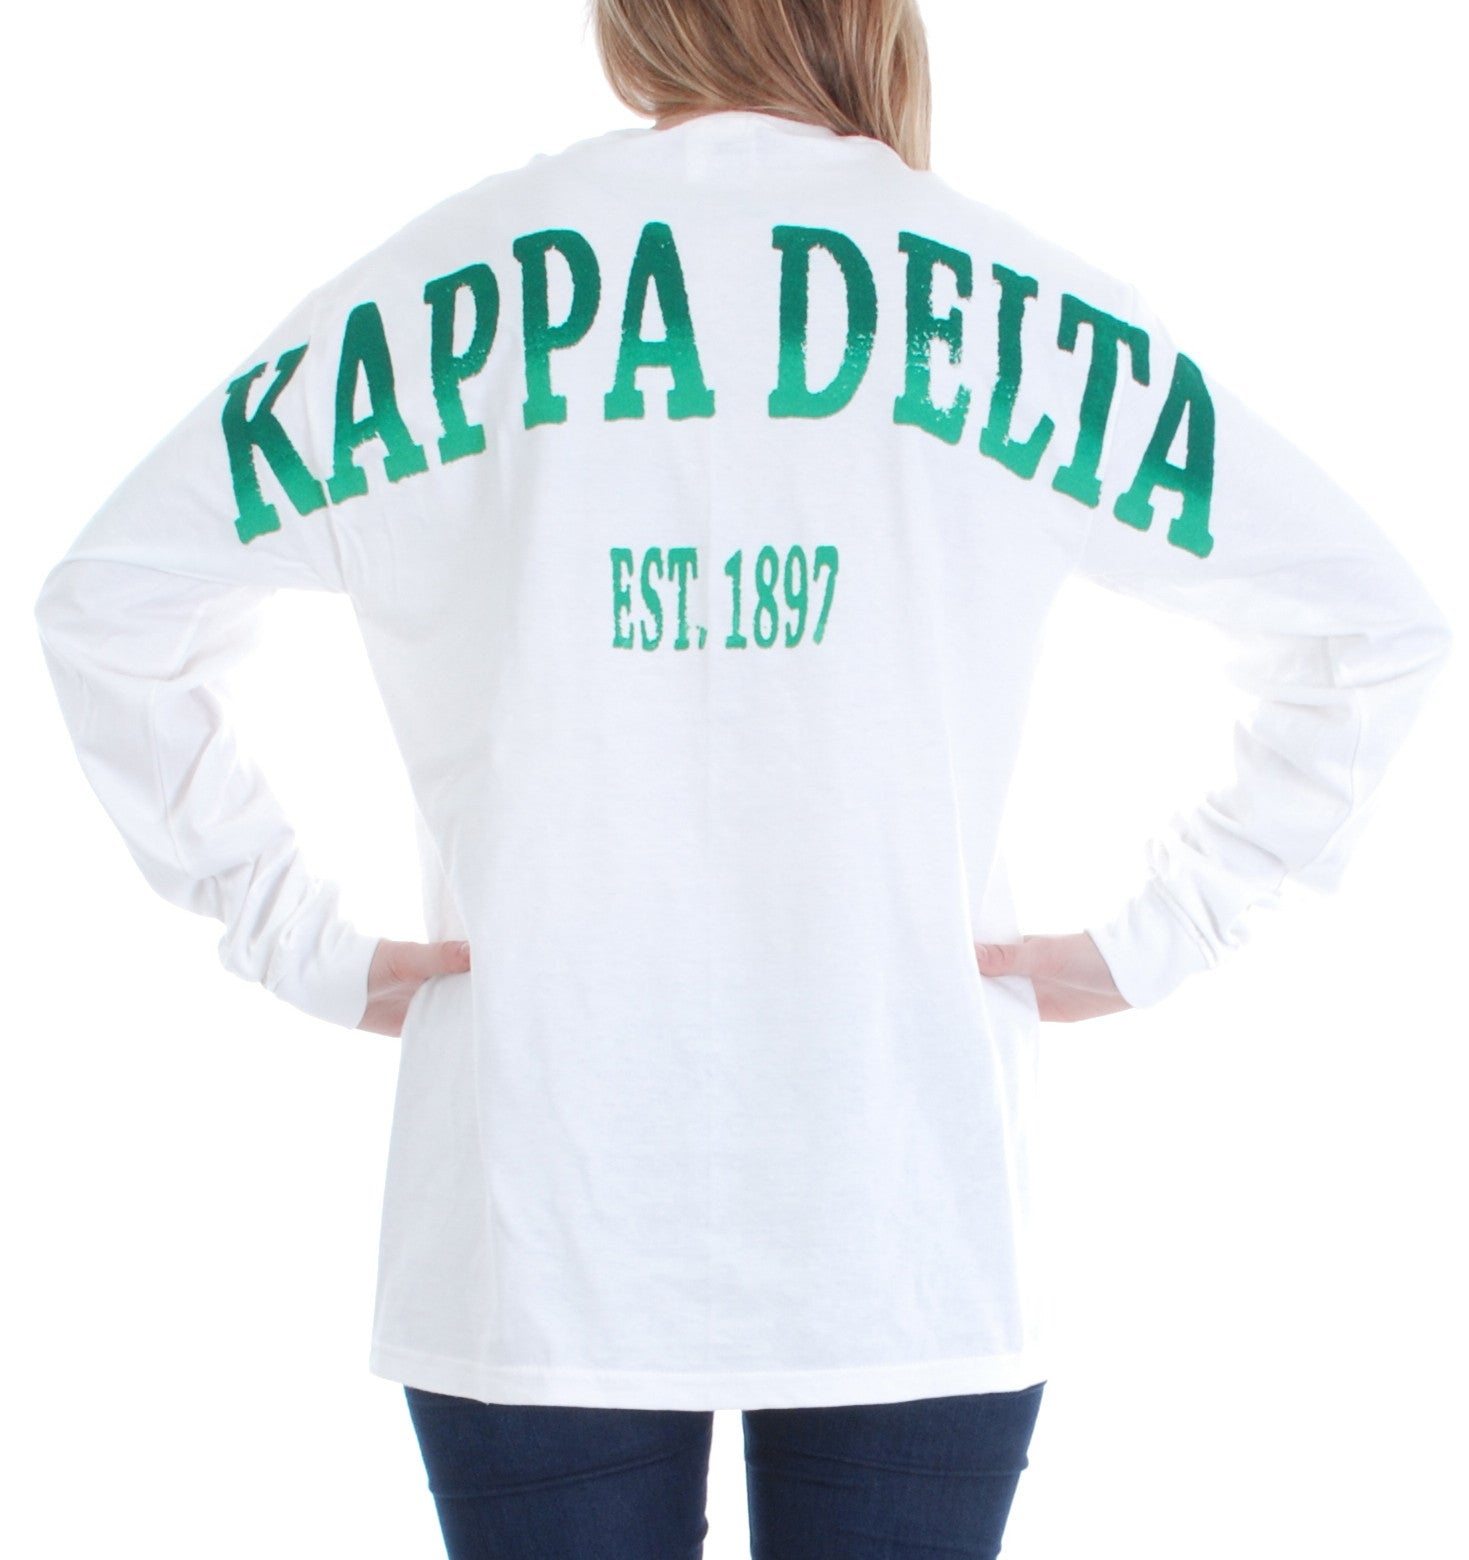 Kappa Delta Color Series Stadium Jersey